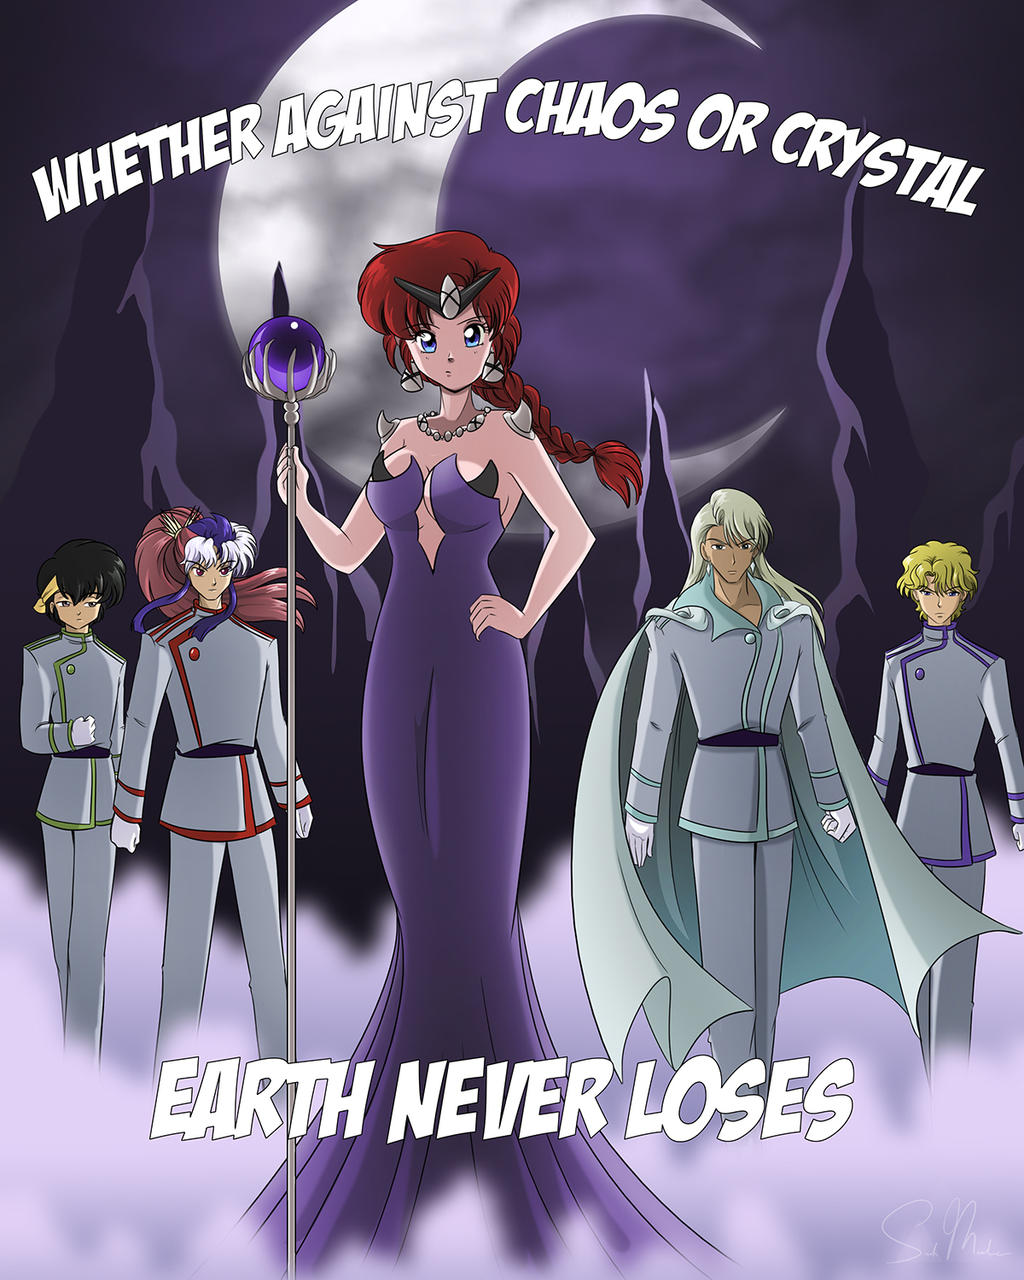 Earth Never Loses by SMeadows